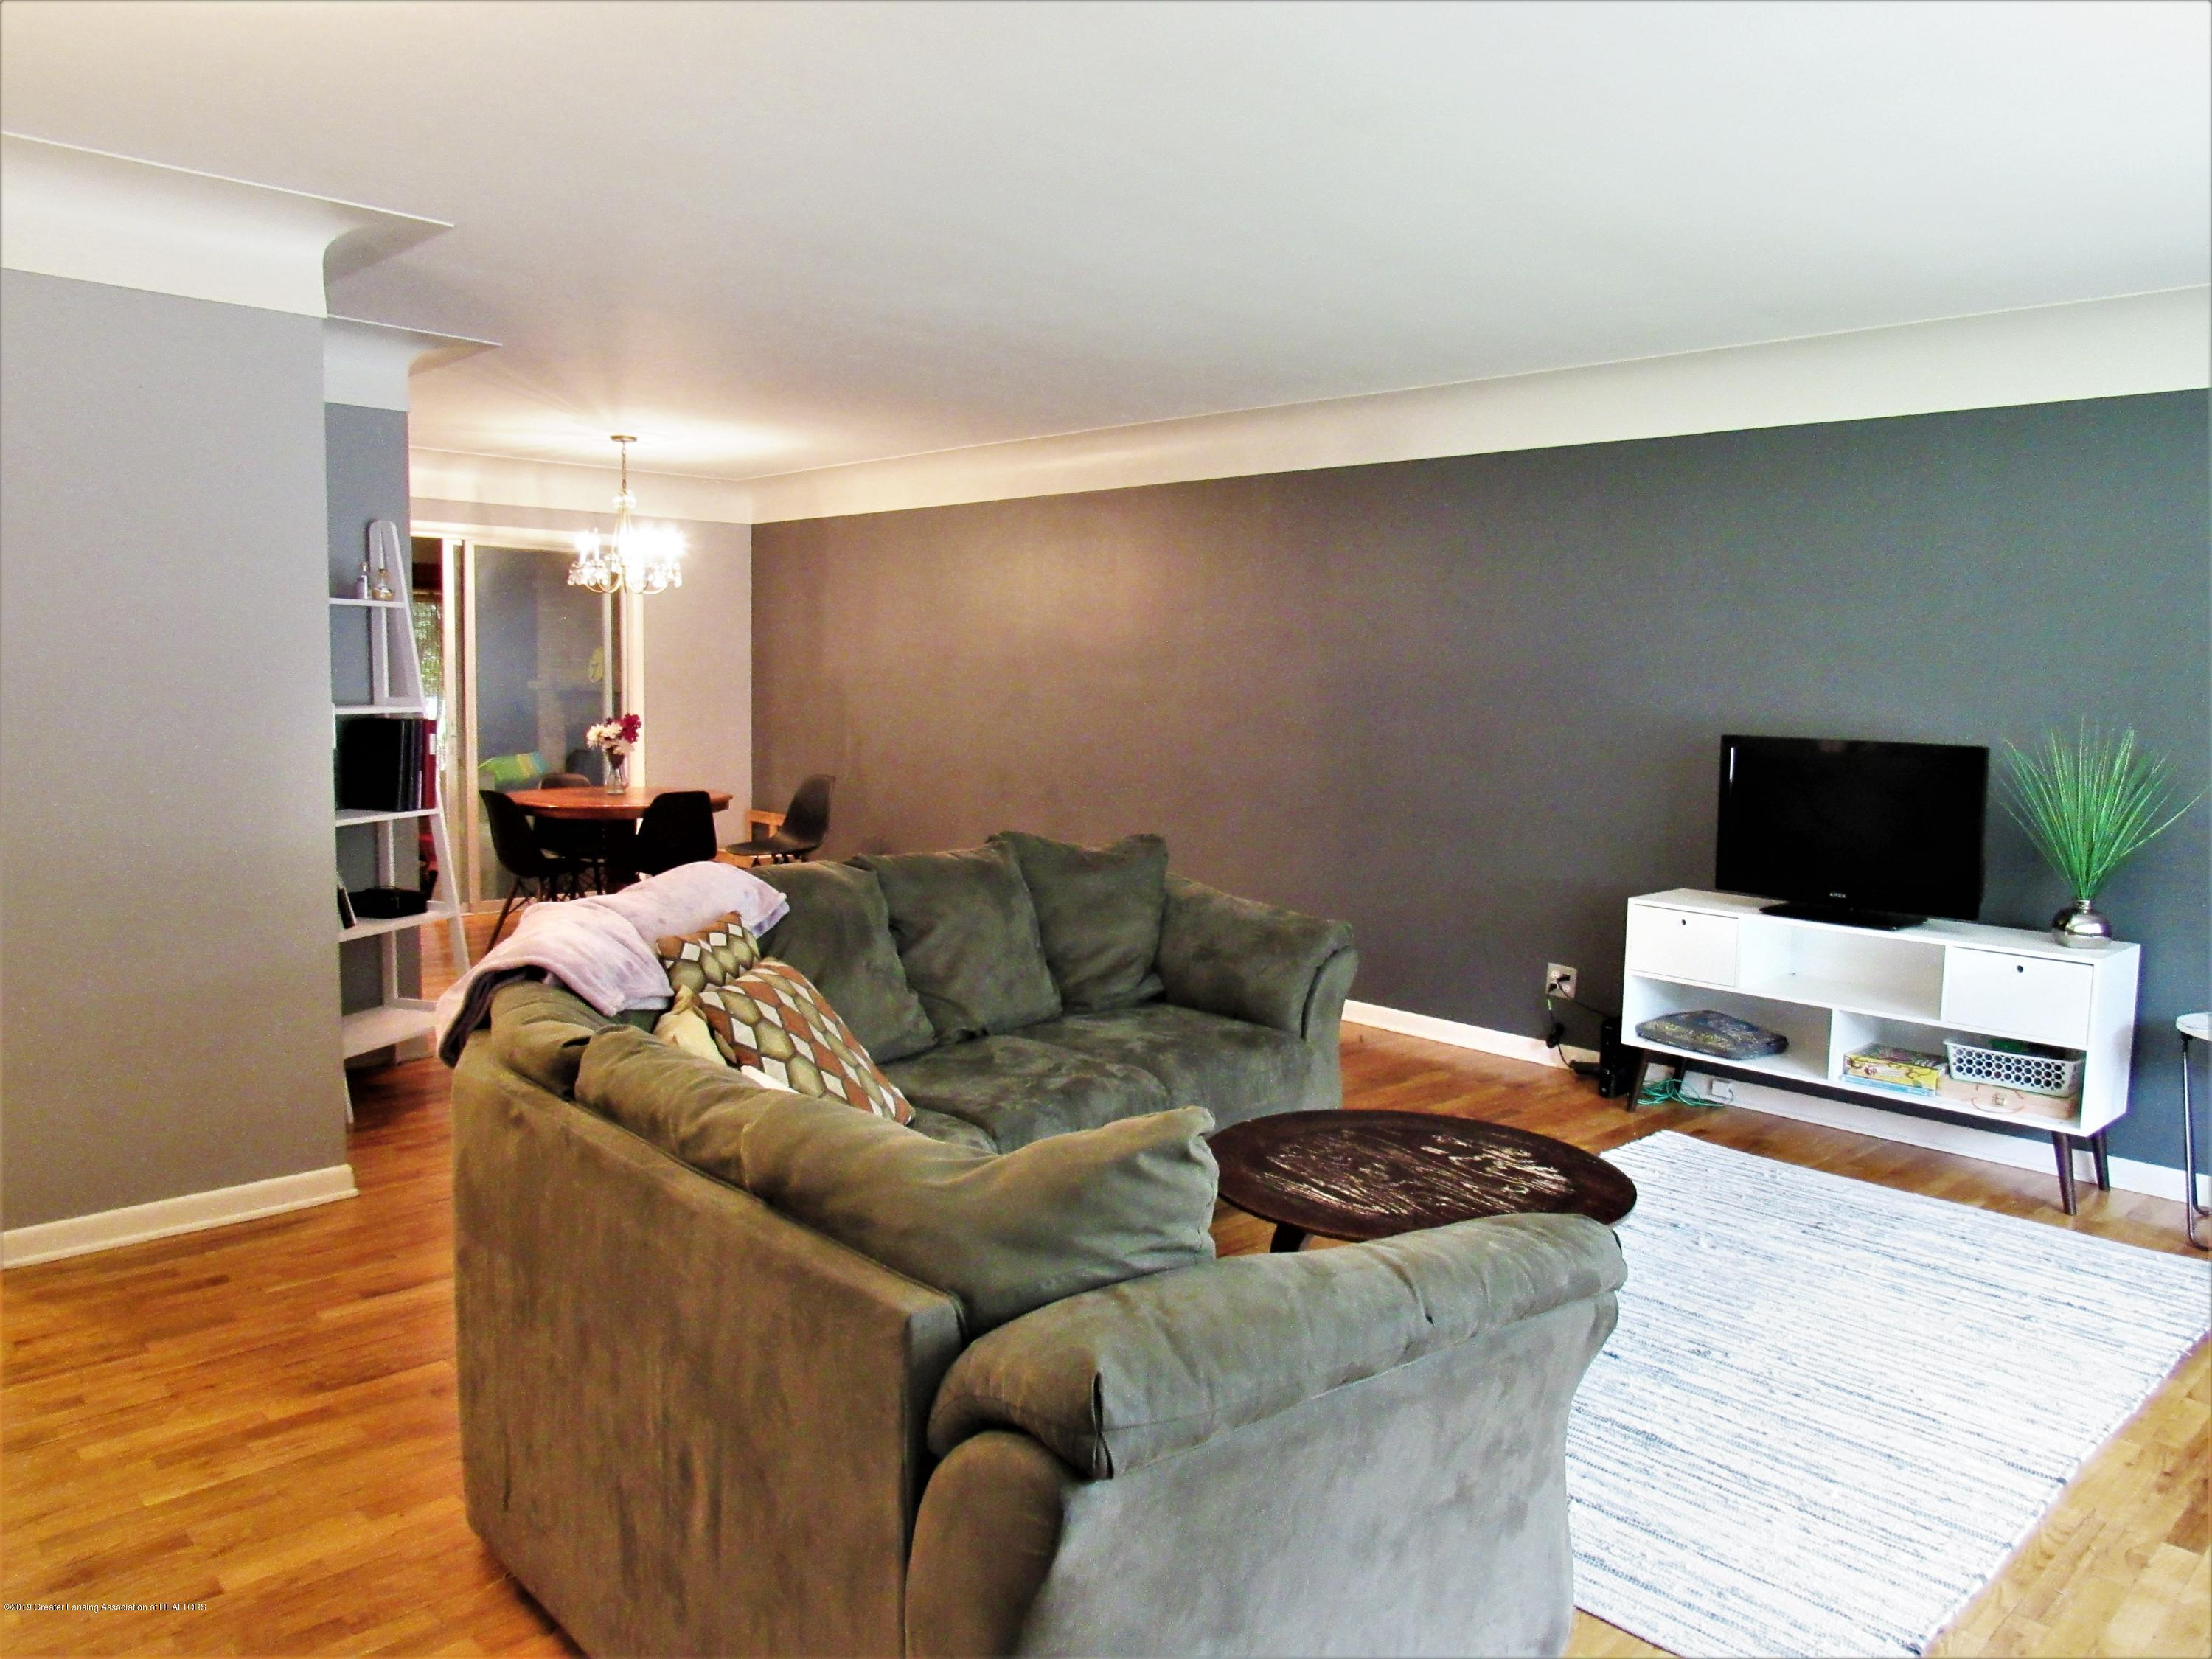 425 S Holmes St - Living Room View 2 - 4